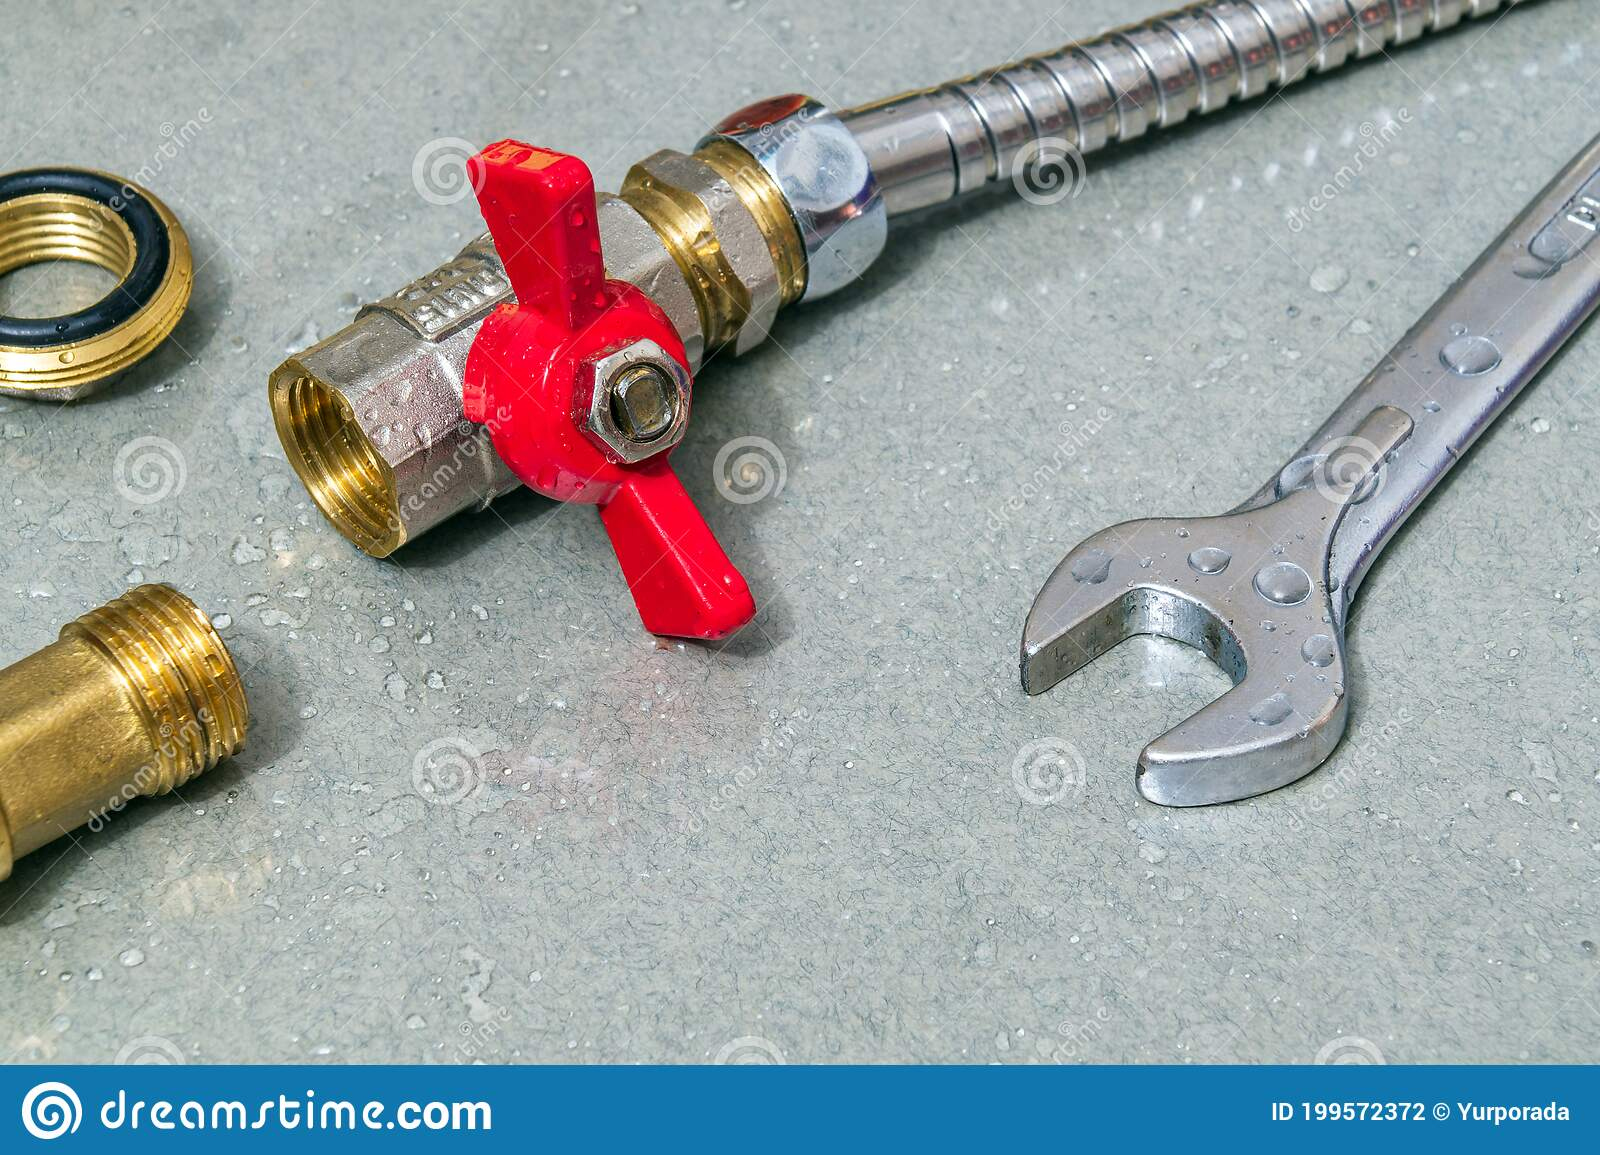 plumbing faucet and a wrench in water drops during equipment repair during an accident stock photo image of drops factory 199572372